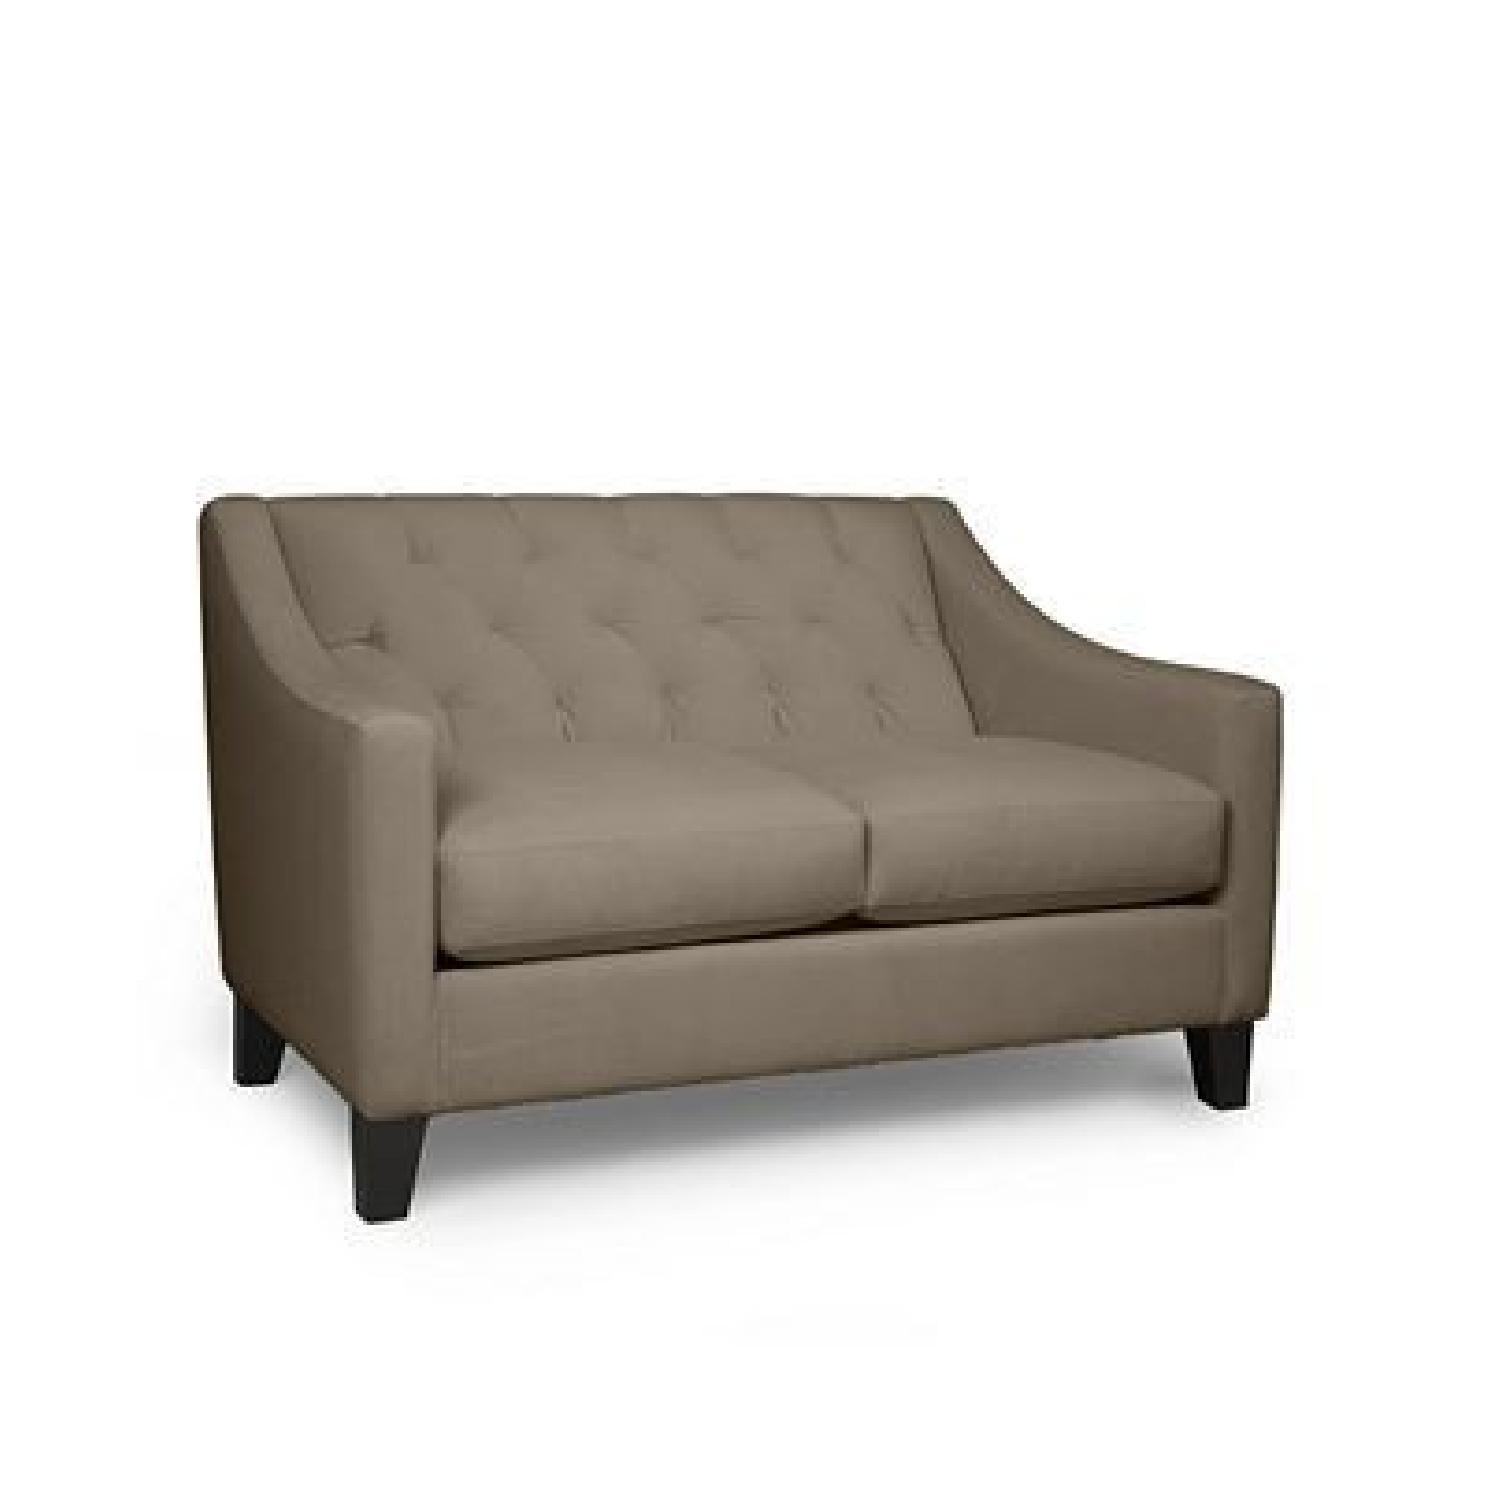 Macy's Velvet Tufted Loveseat in Granite - image-0